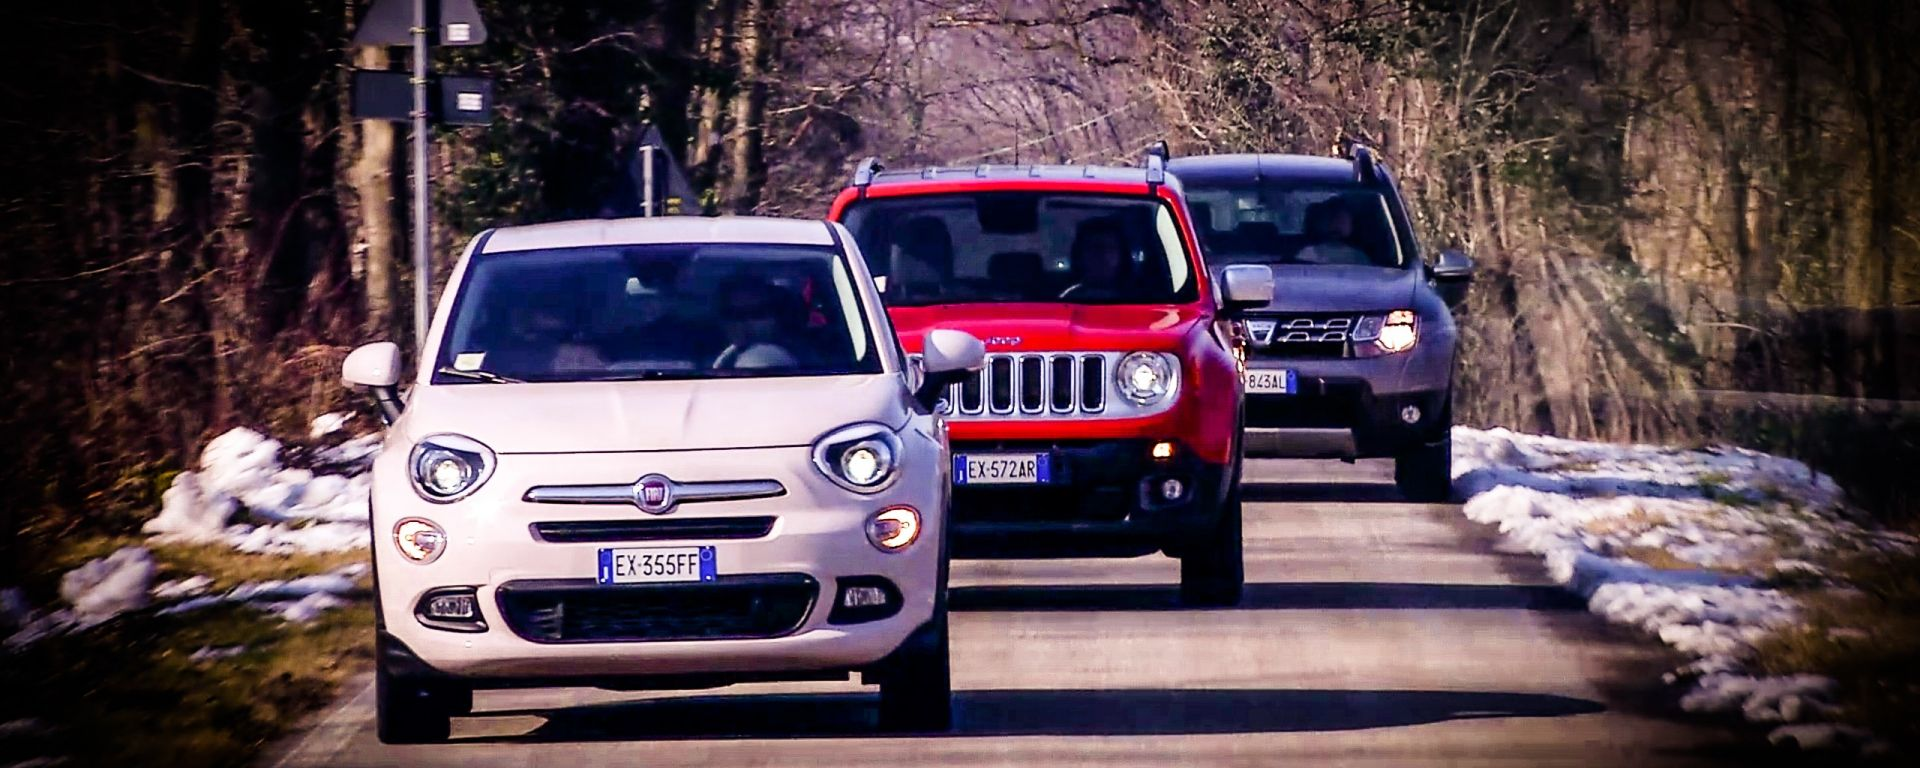 Fiat 500X vs Jeep Renegade vs Dacia Duster